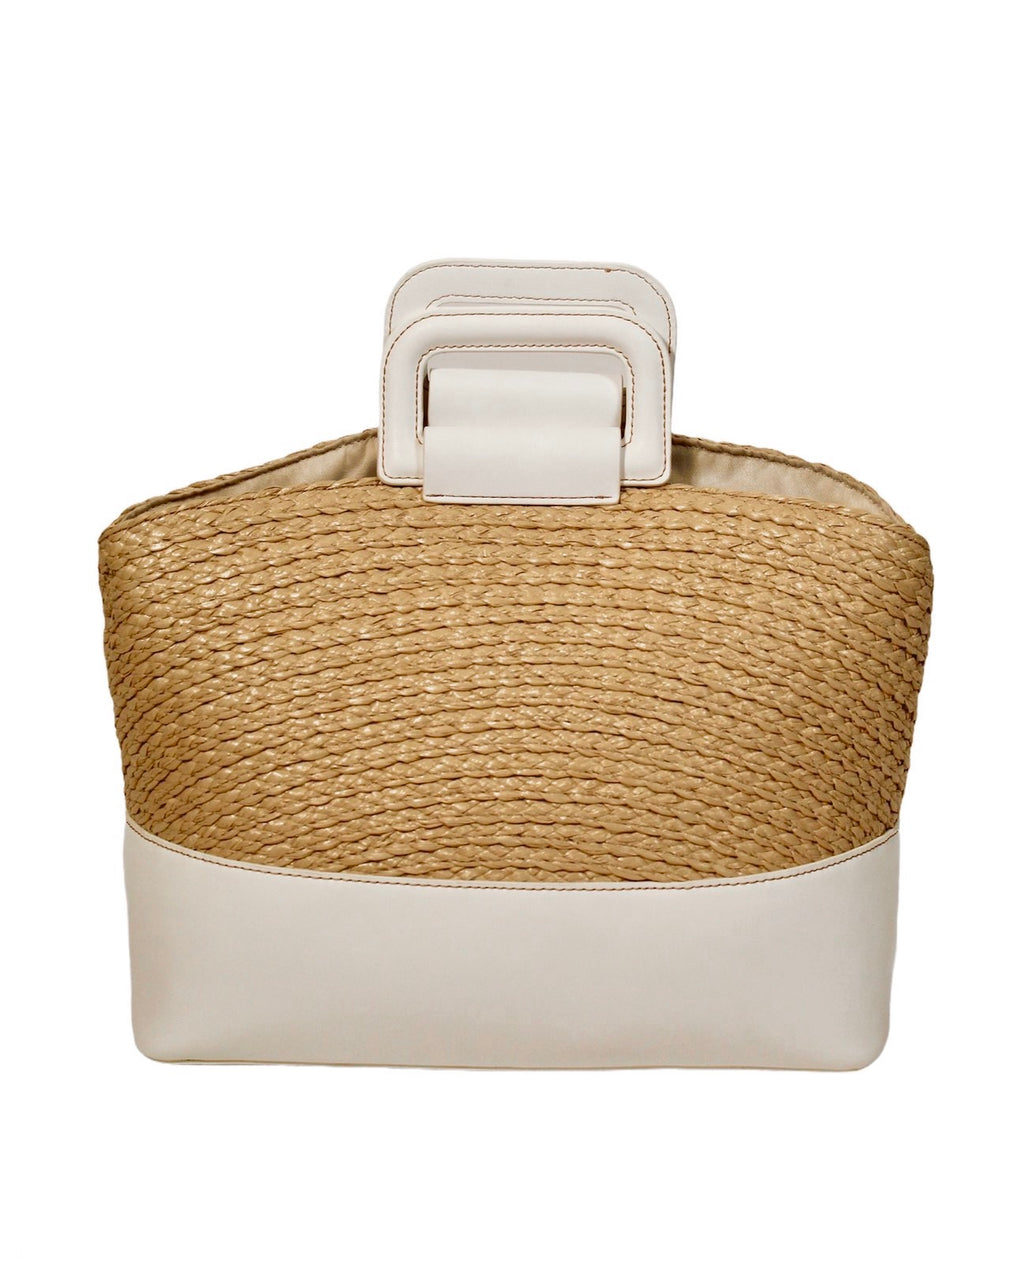 Hamptons Woven Straw Tote